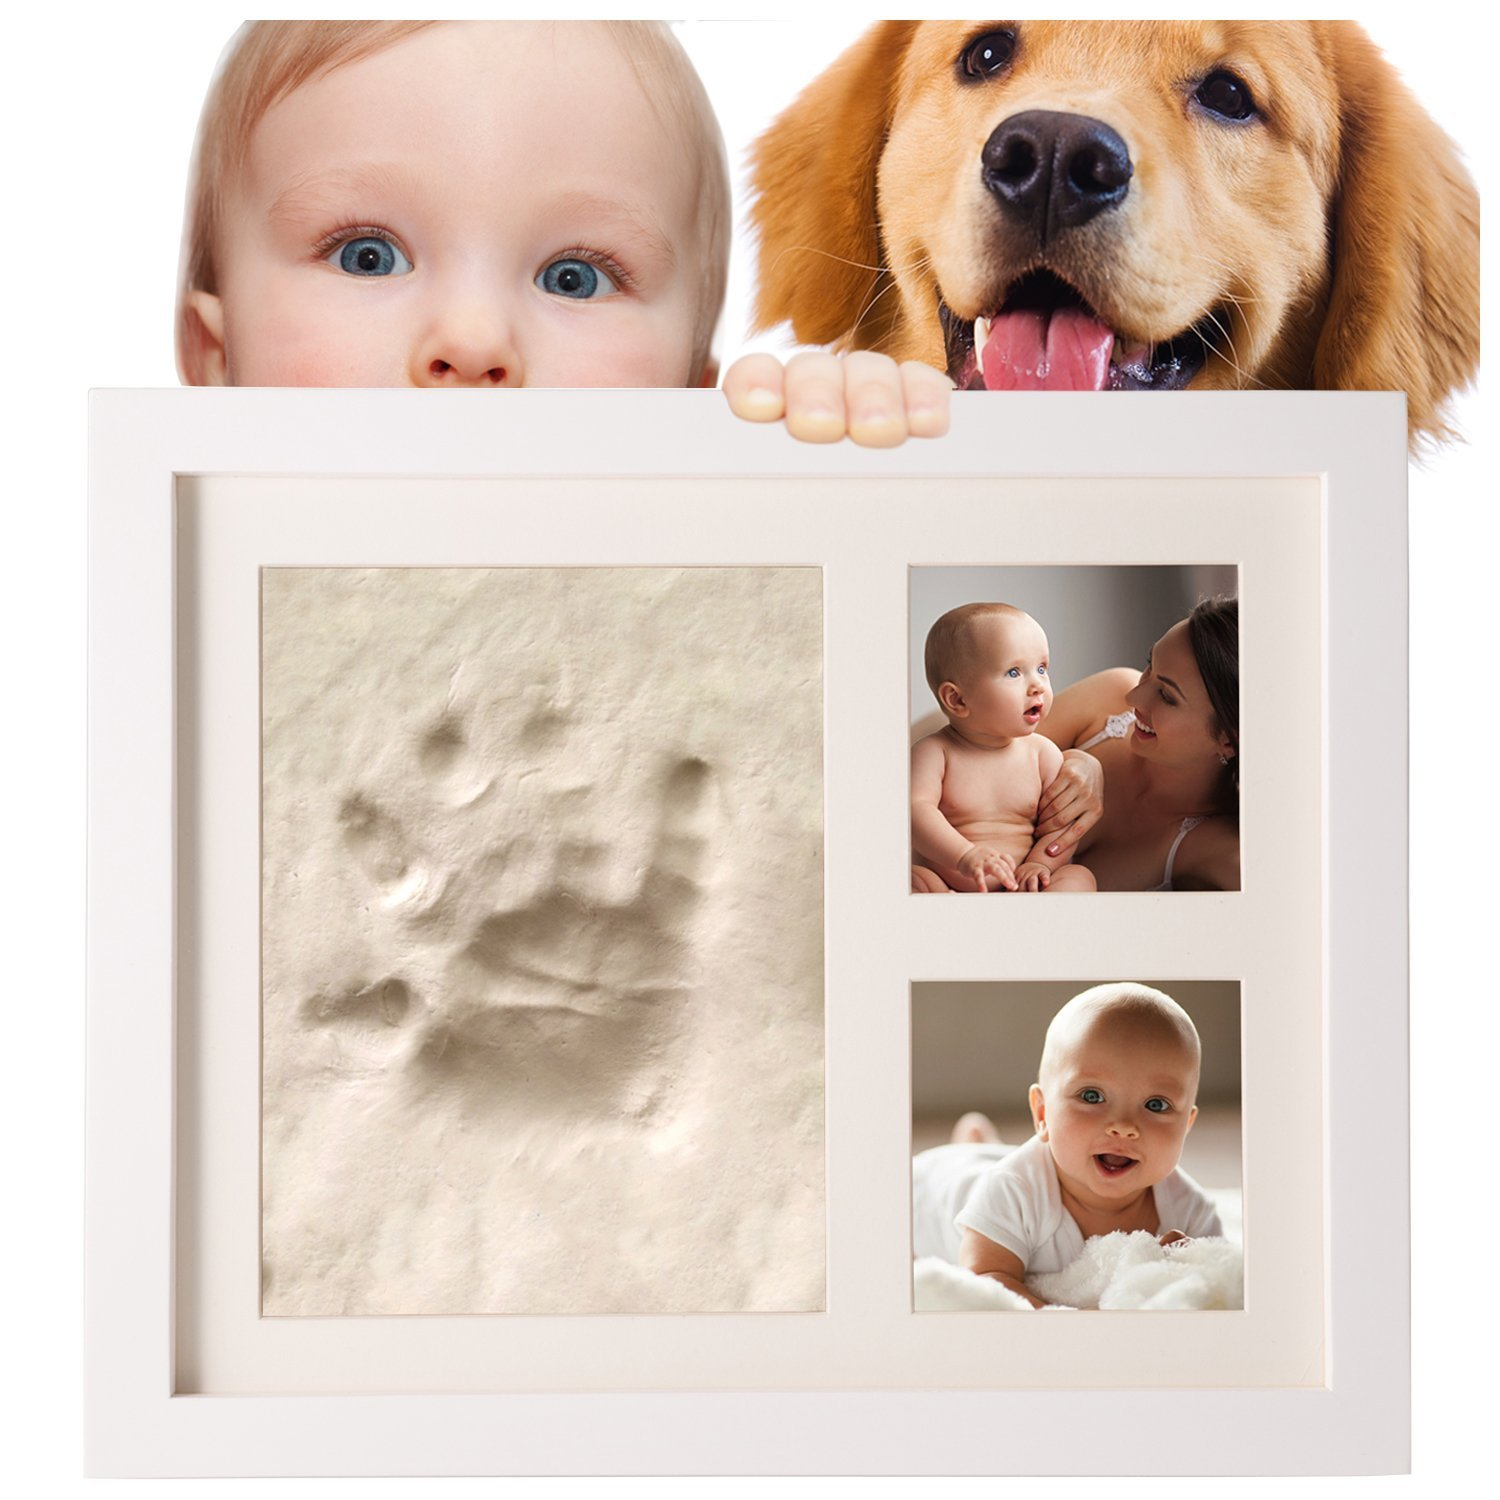 SafBabies Baby Handprint and Footprint Clay Kit Picture Frame, White